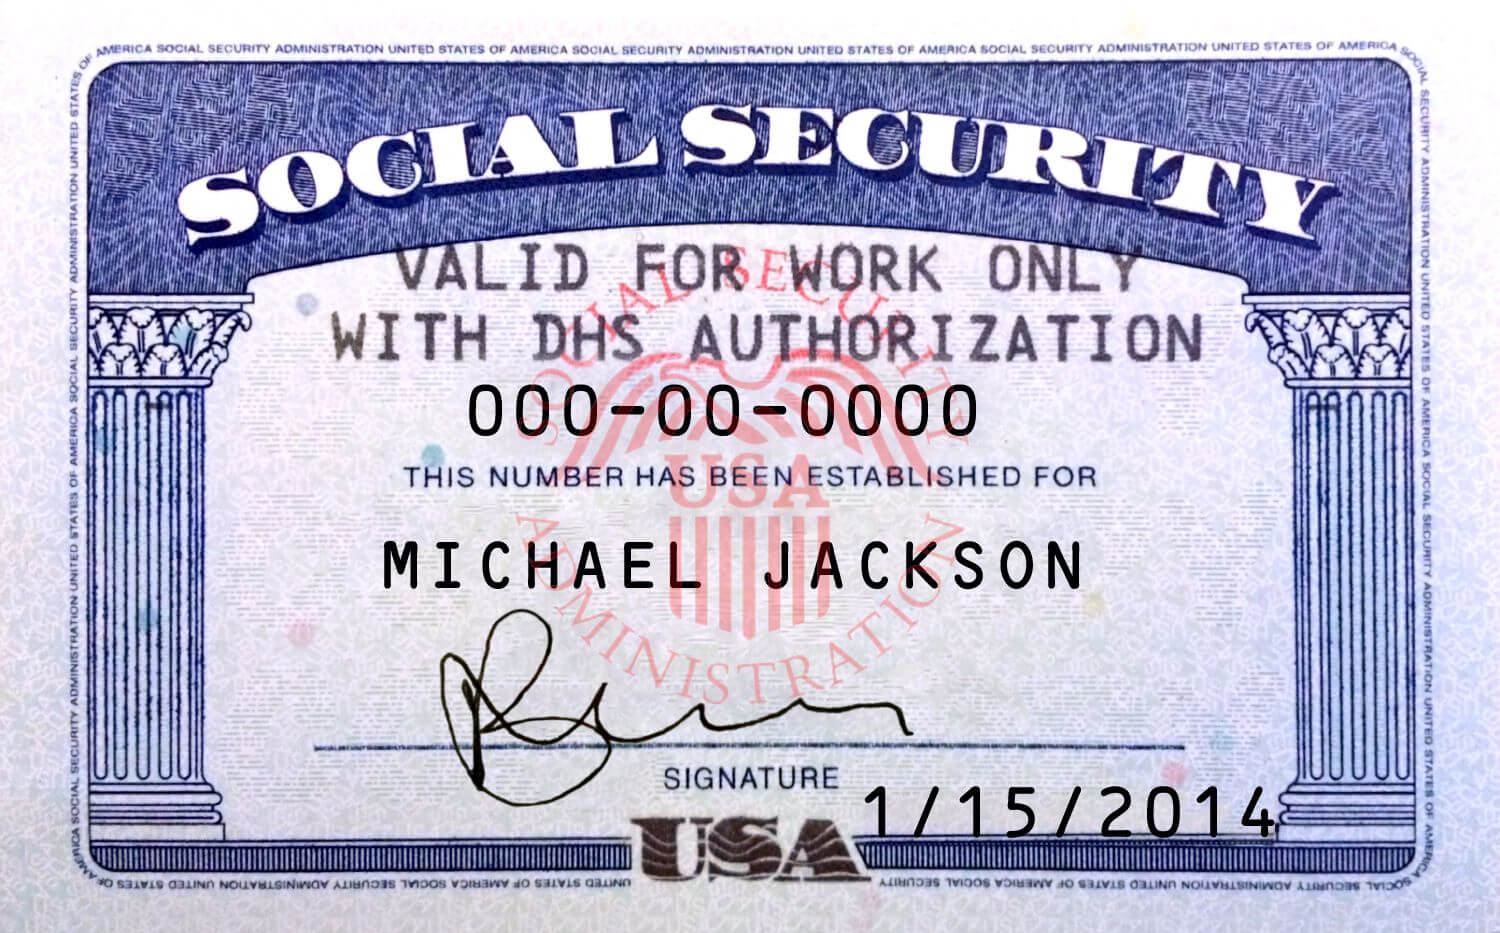 This Is Ssn Card (Usa) Psd (Photoshop) Template. On This Psd Inside Social Security Card Template Photoshop